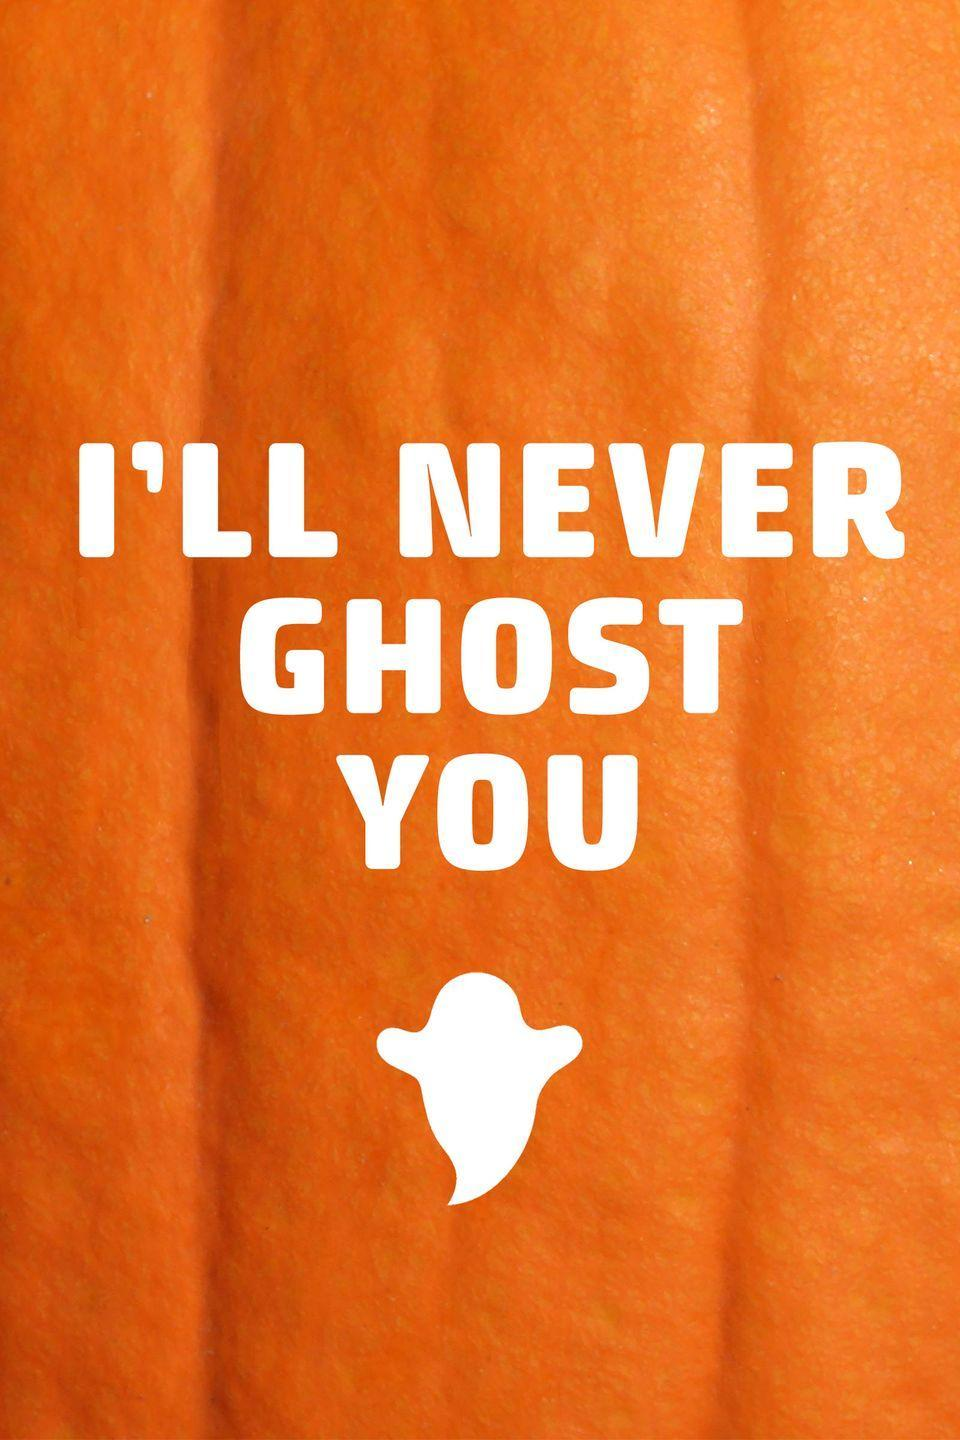 <p>Think of this one as a modern love letter you can carve into your pumpkin.</p>